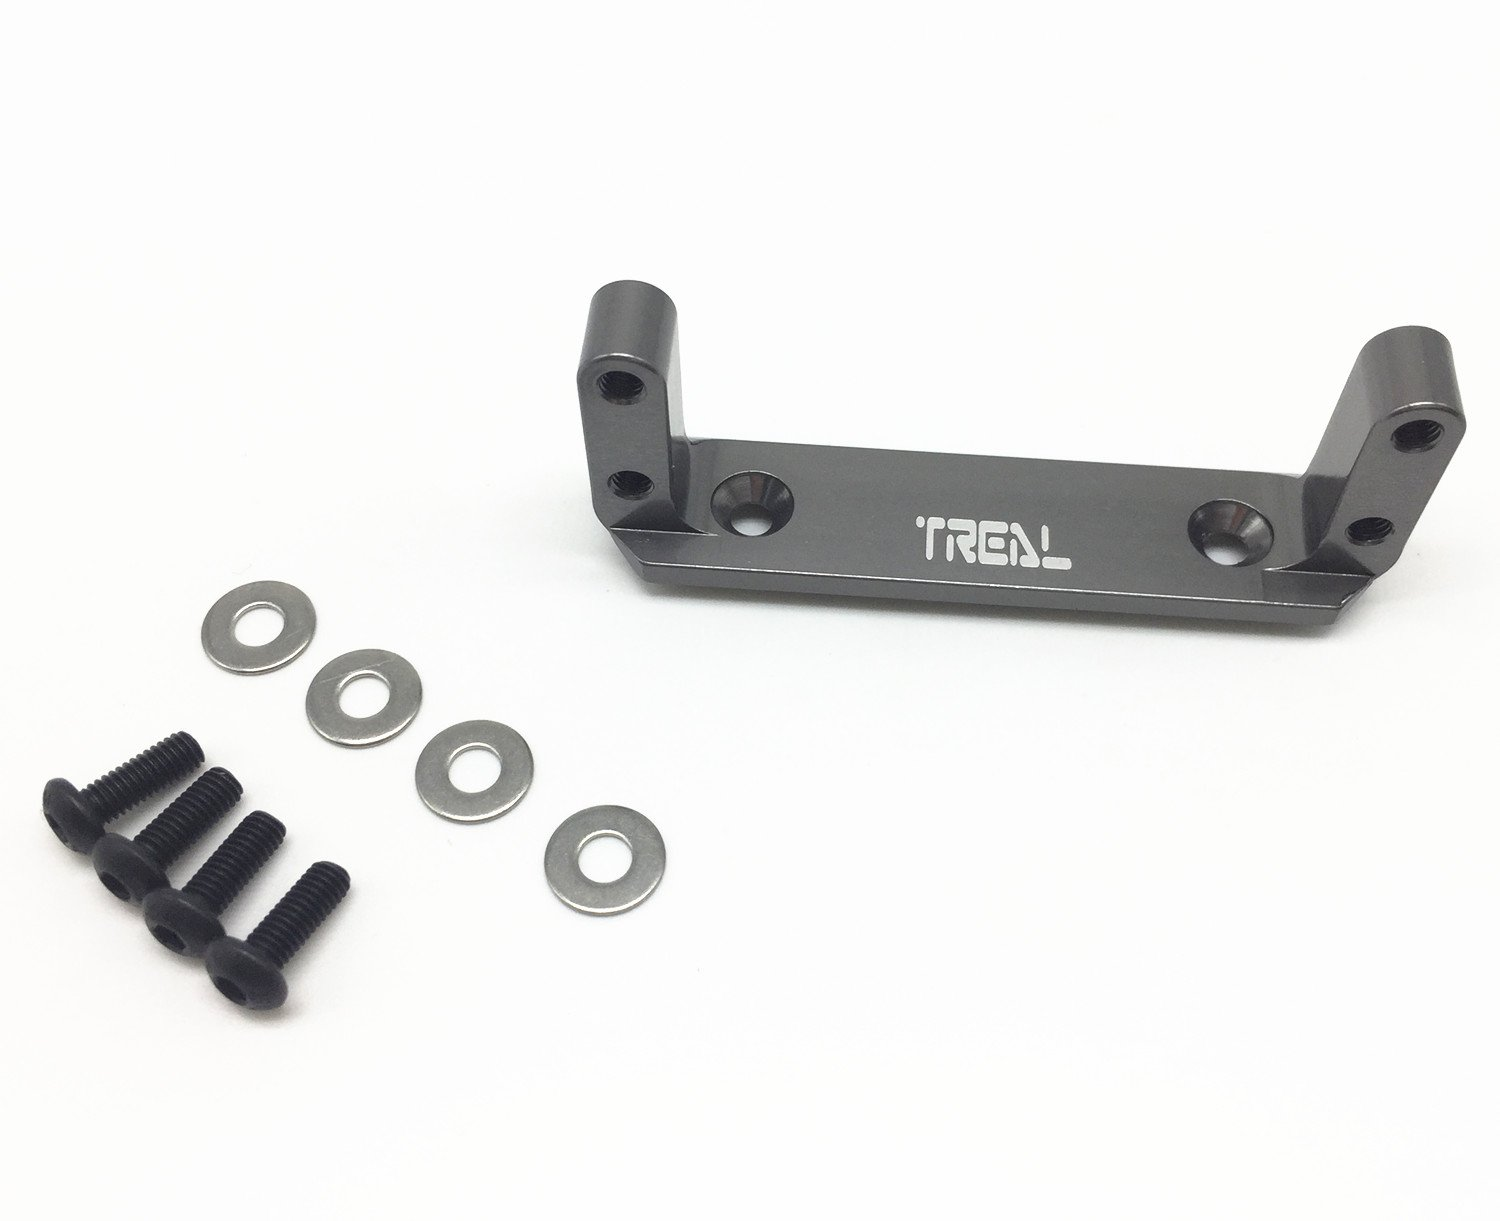 Treal Alloy Axle Servo Mount for Axial Wraith RC Model Hop-ups - Gray